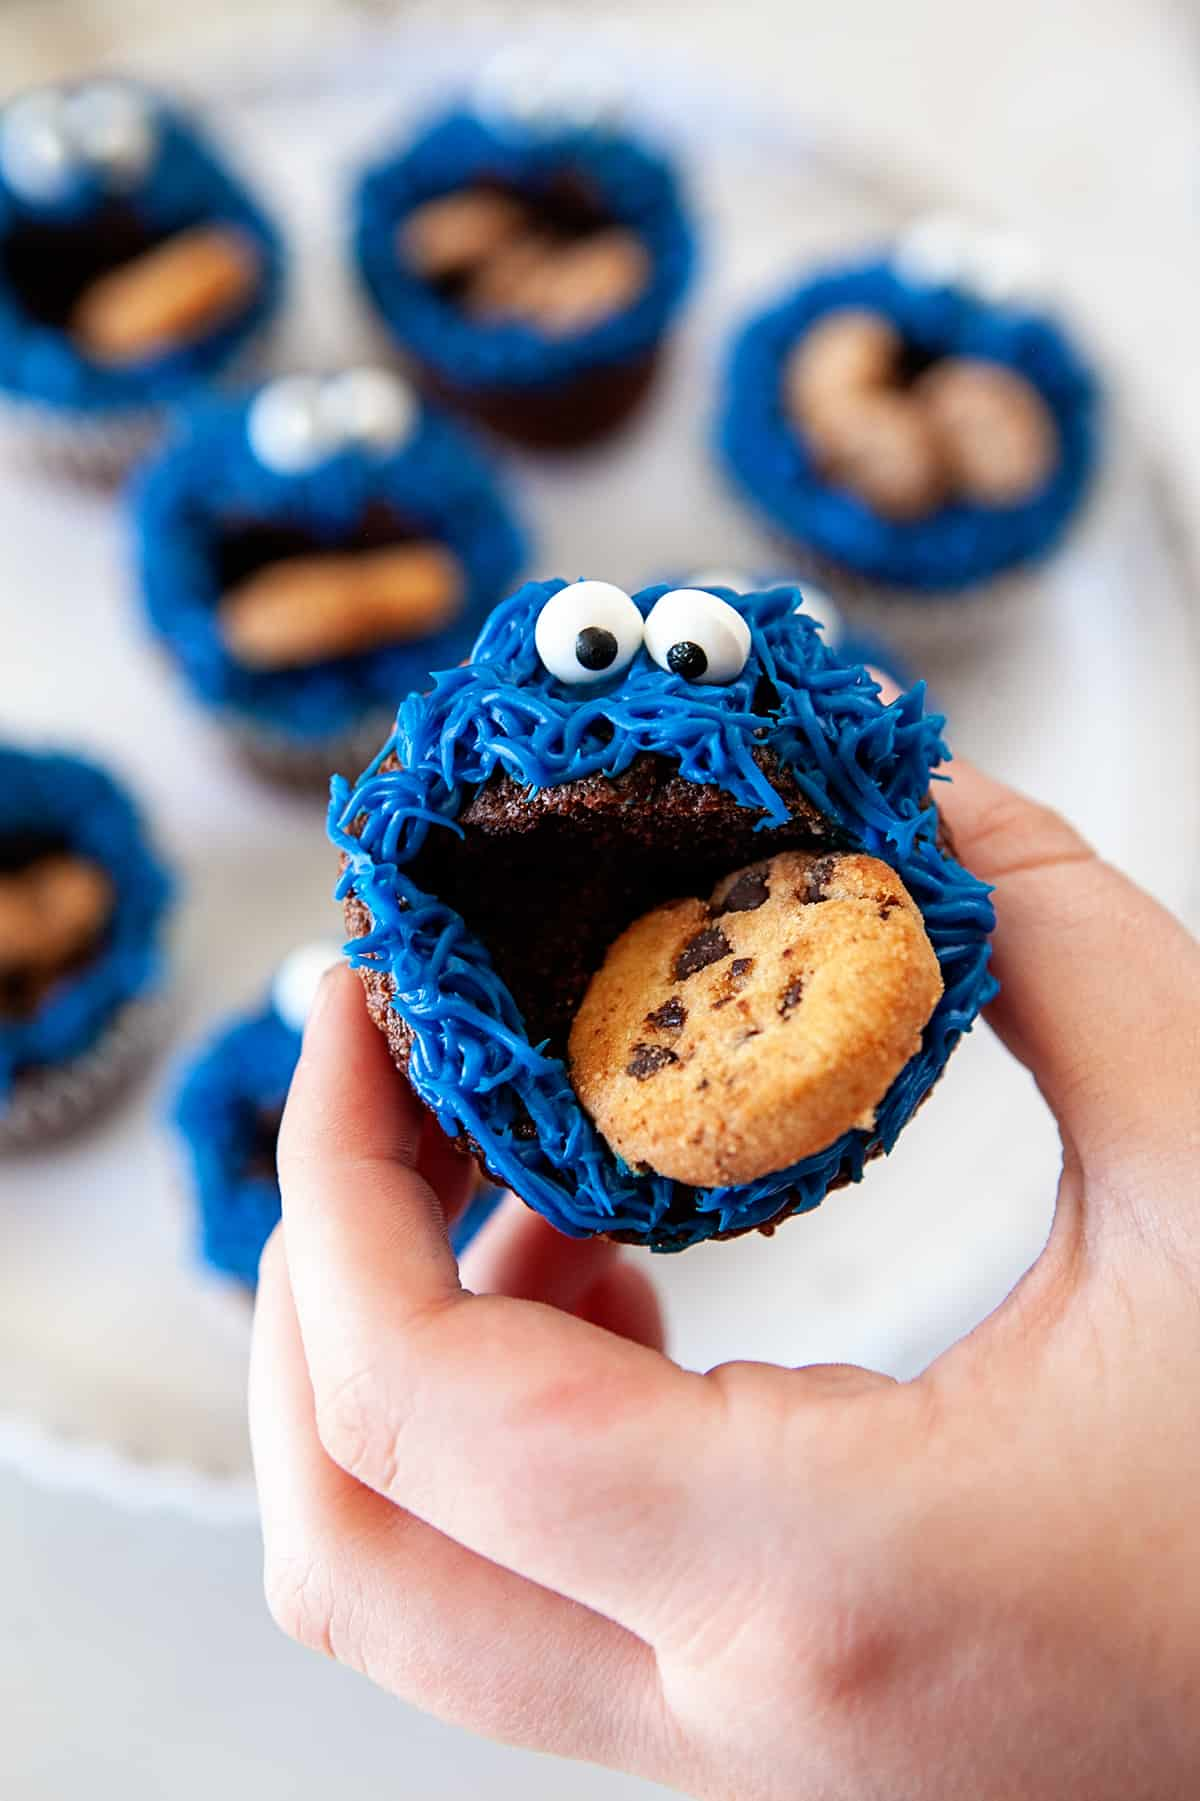 Holding a Fun Cookie Monster Cupcake